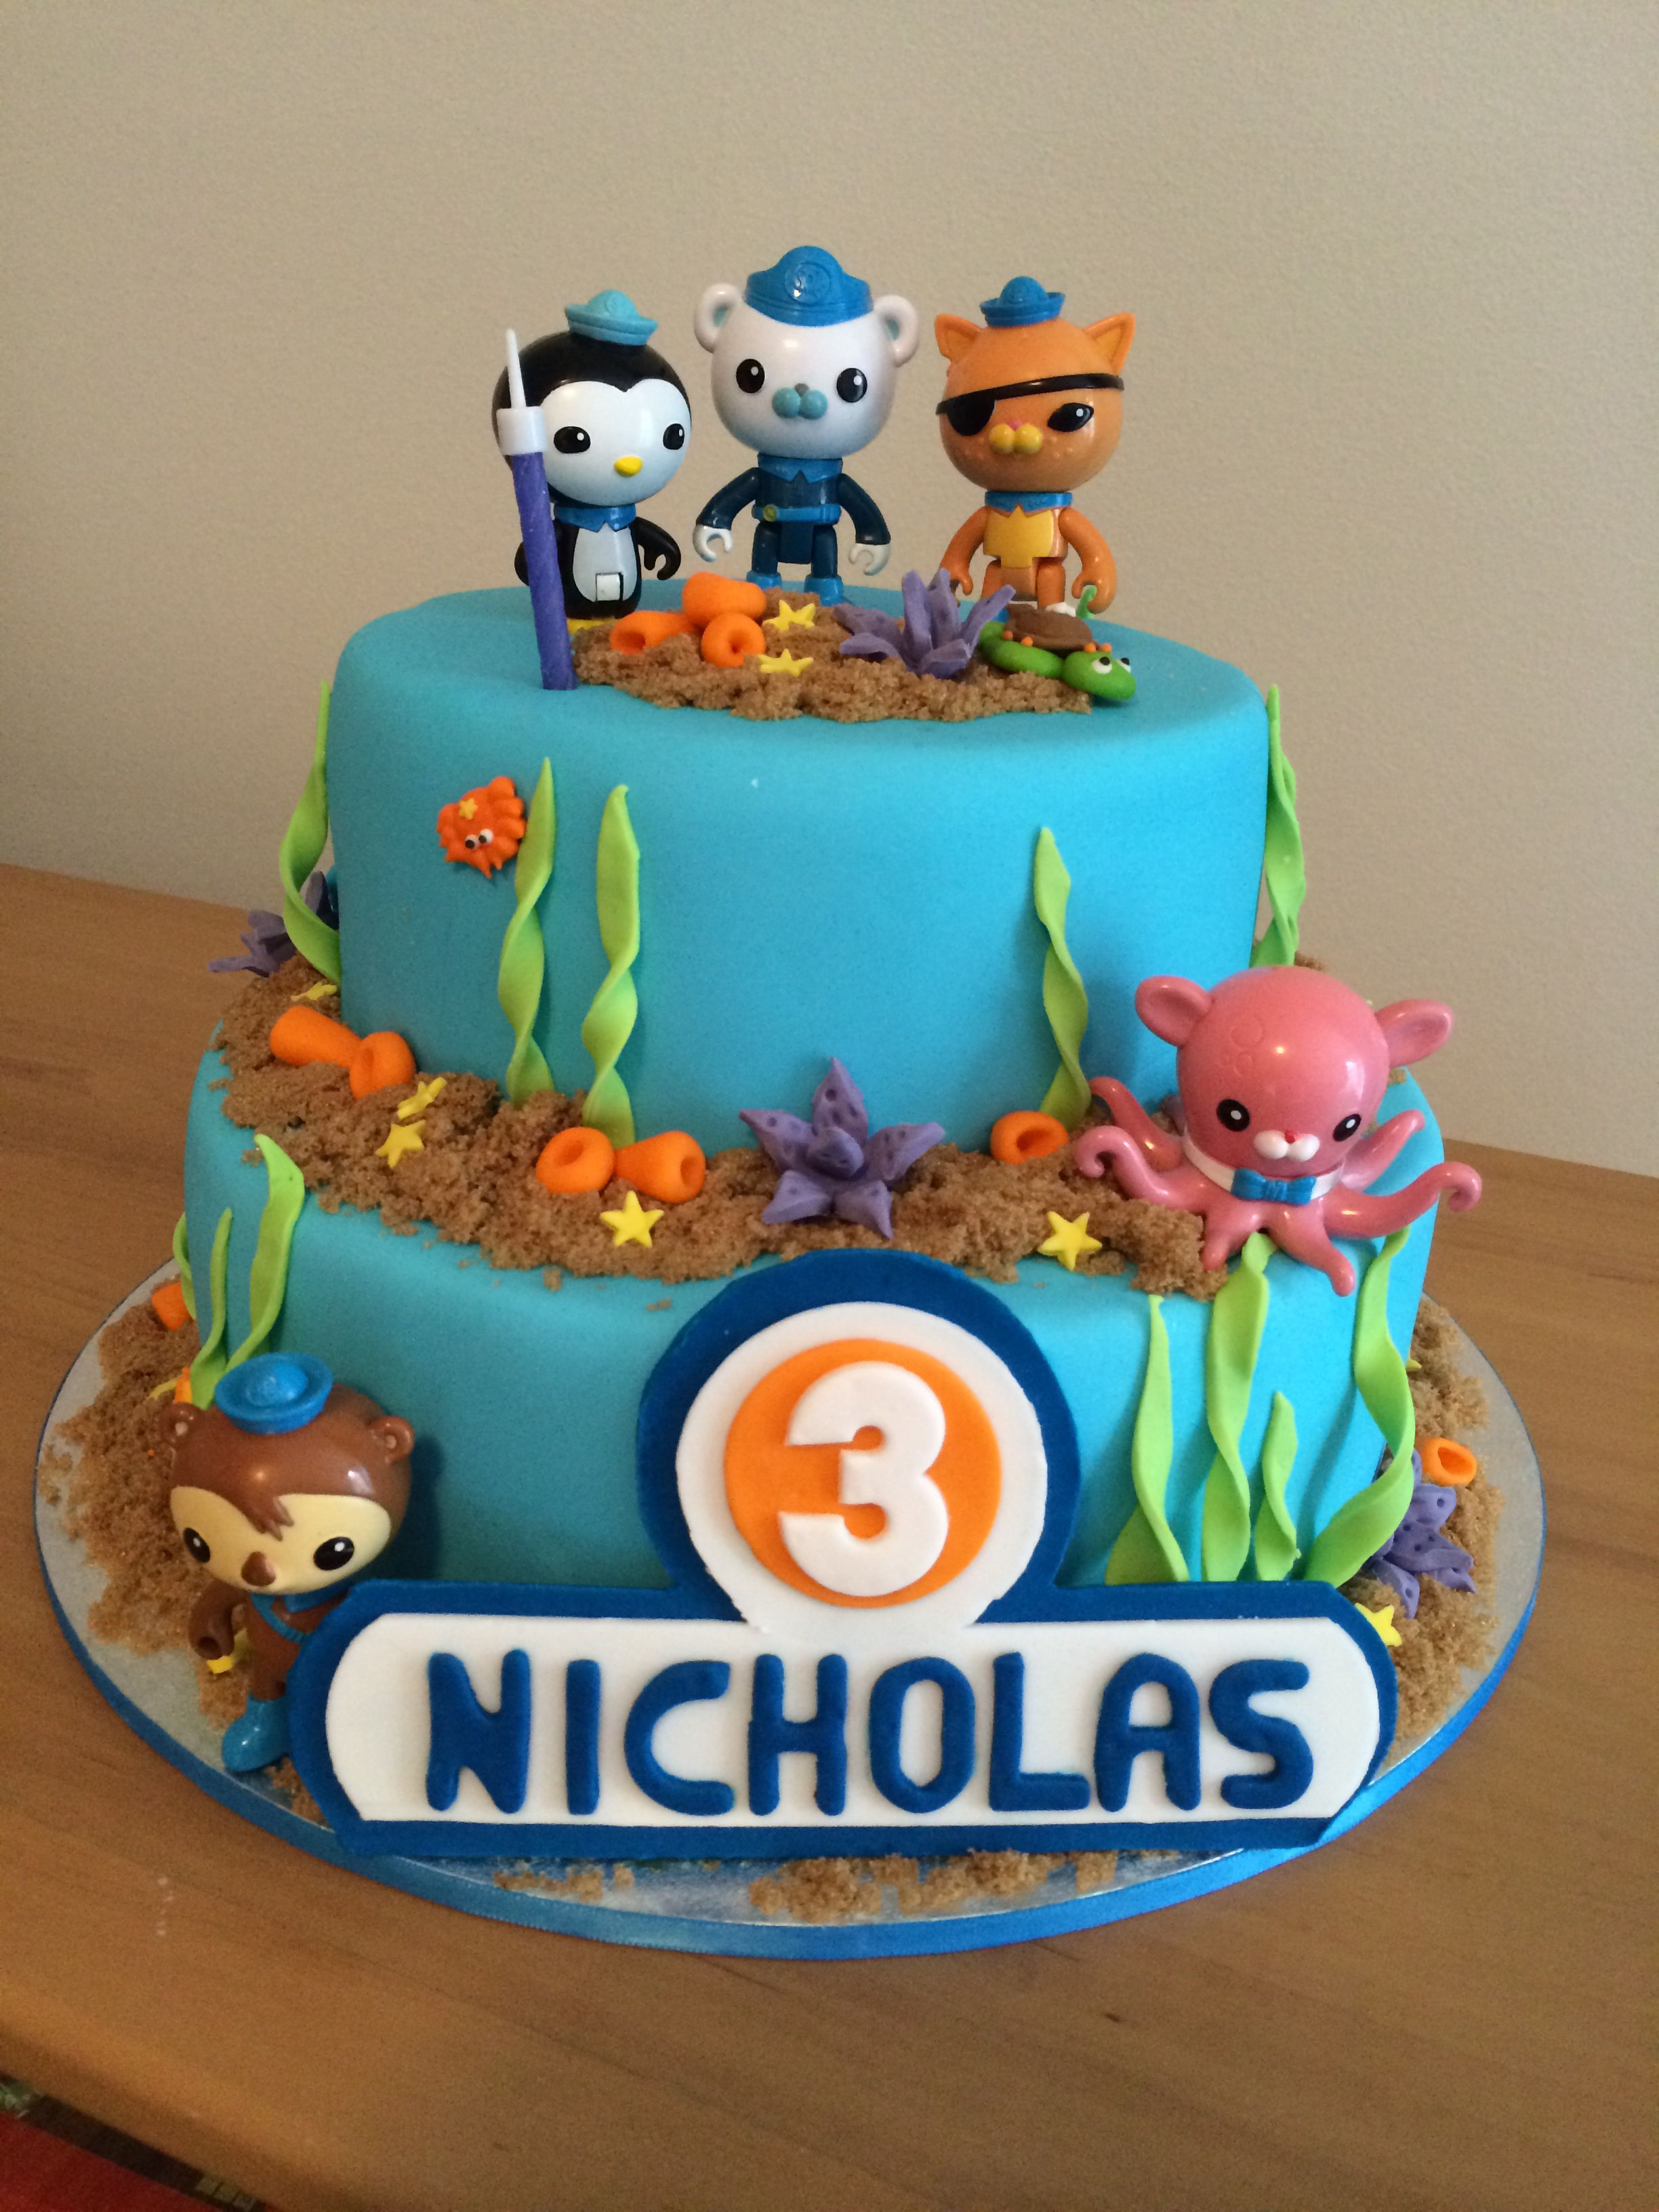 Superb Octonauts Cake For Nicholas With Images Happy Birthday Cake Funny Birthday Cards Online Alyptdamsfinfo